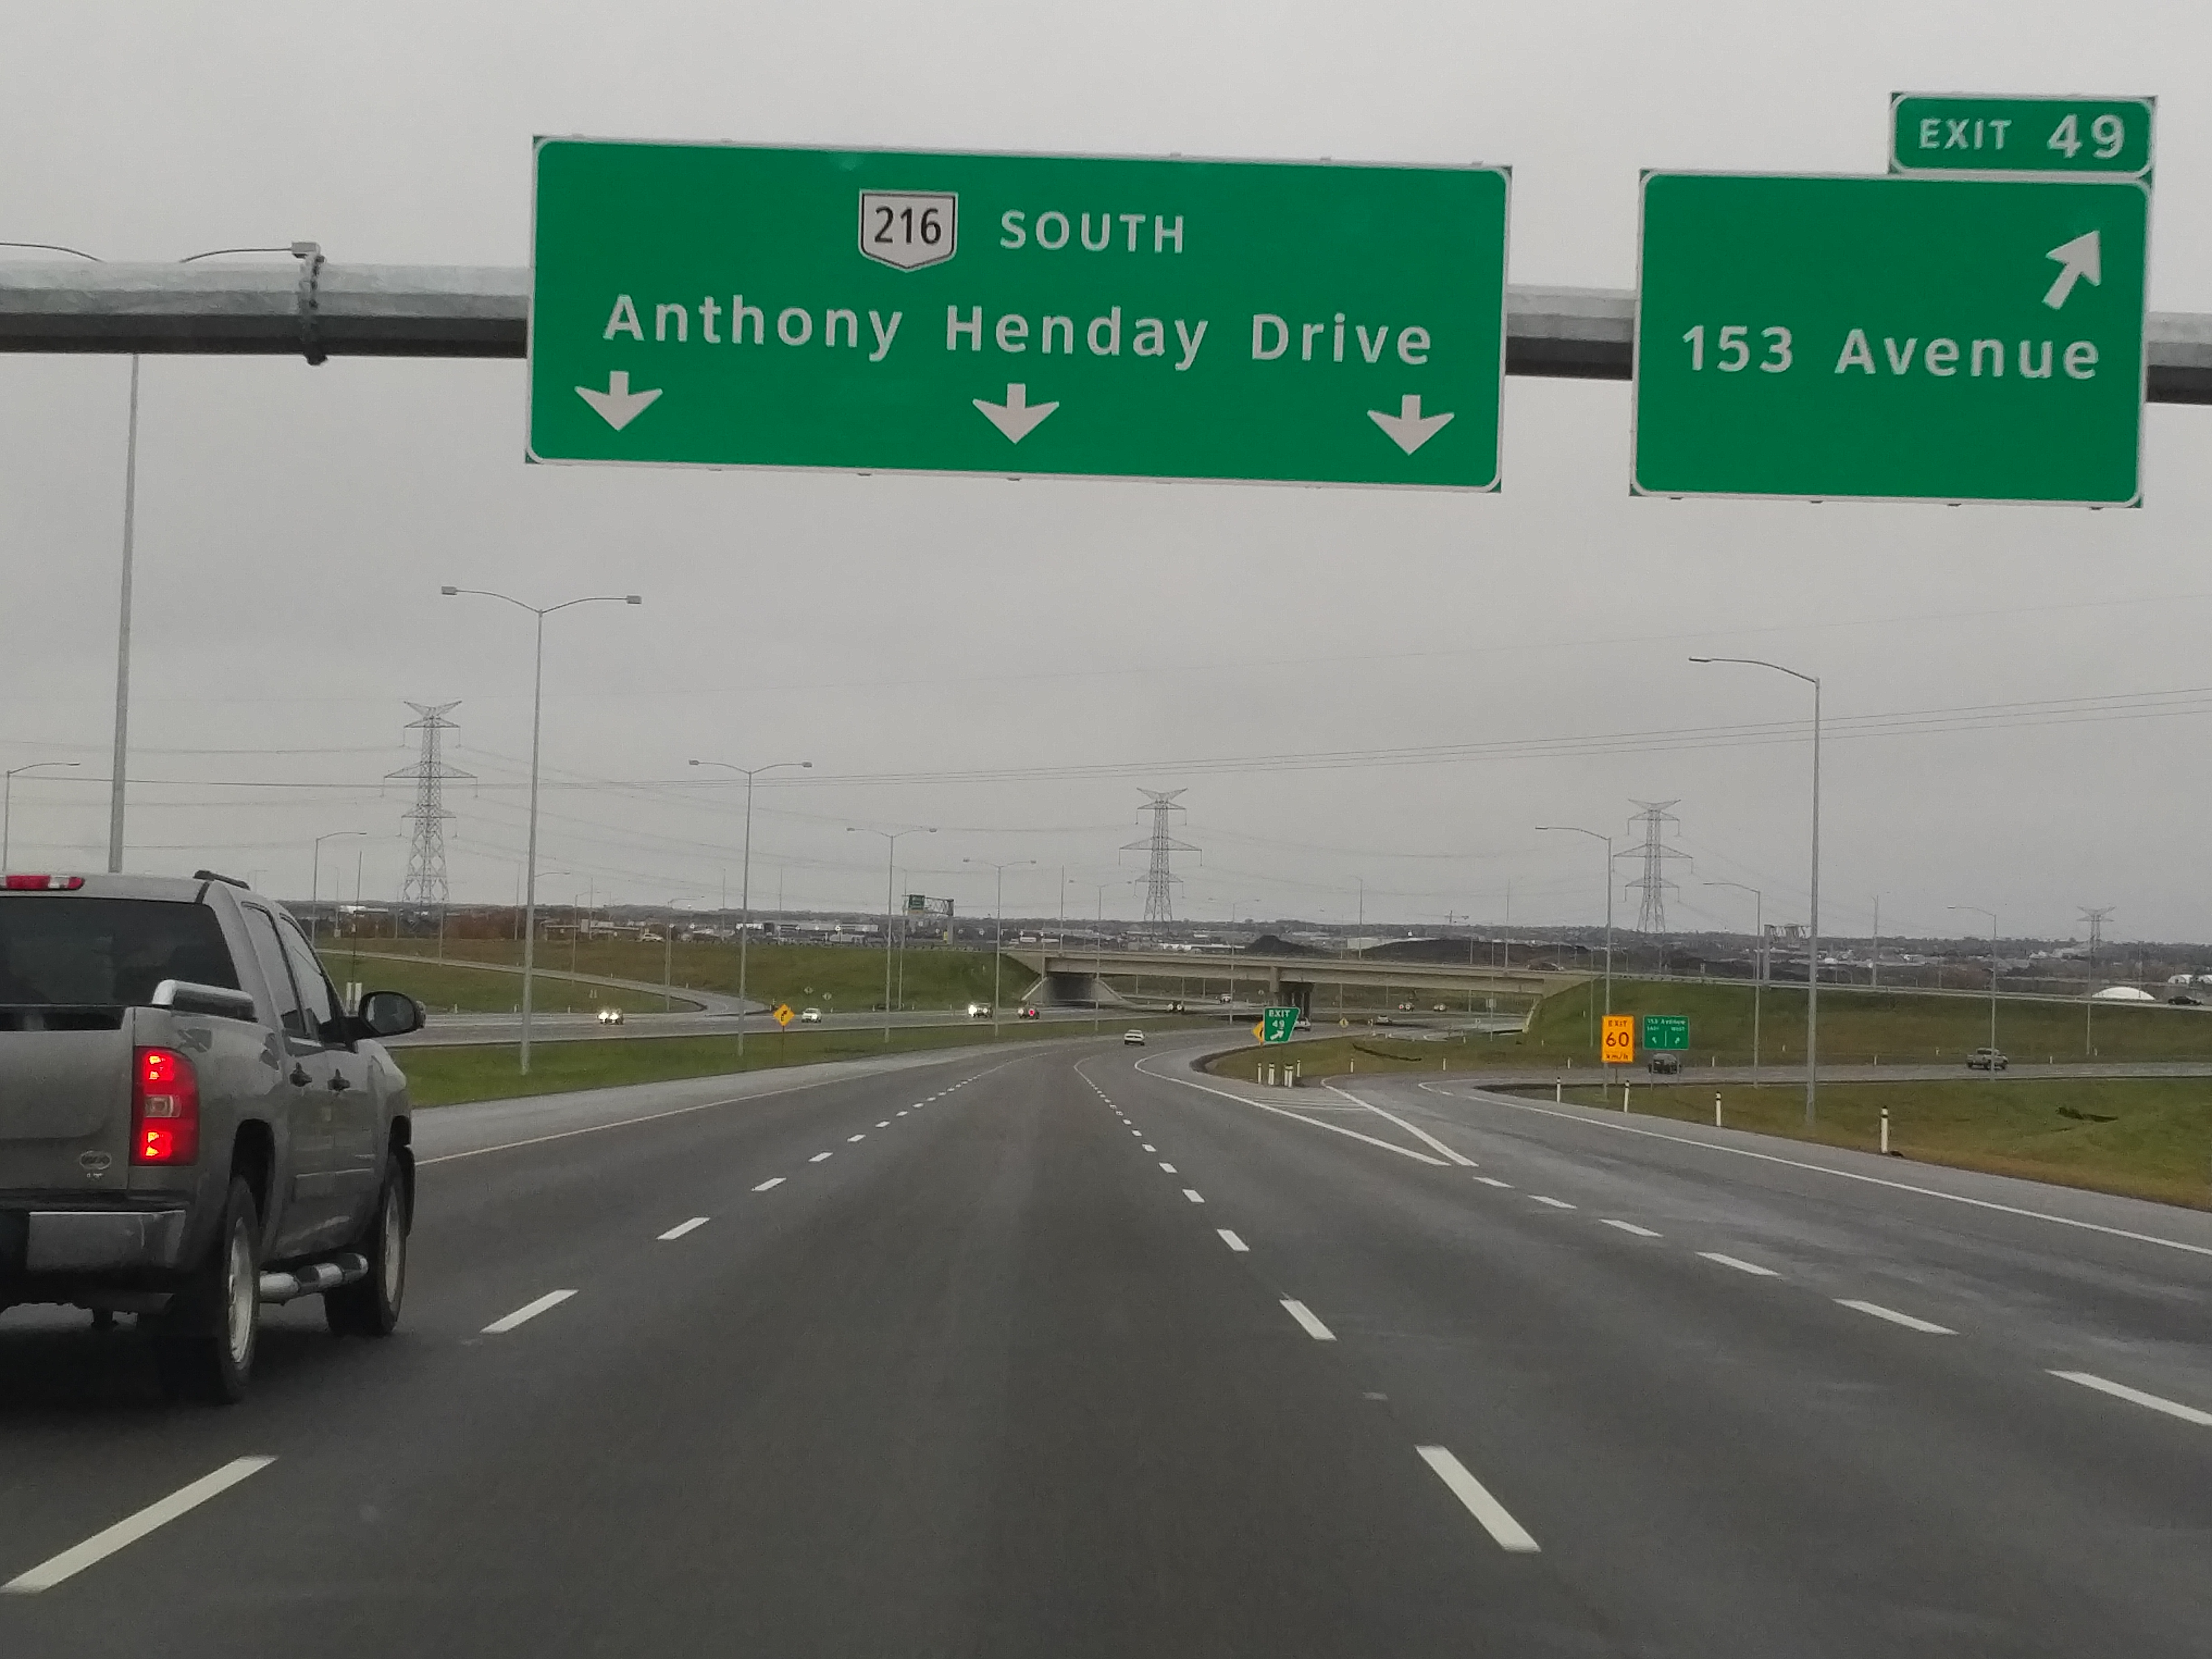 anthony henday access to northeast real estate